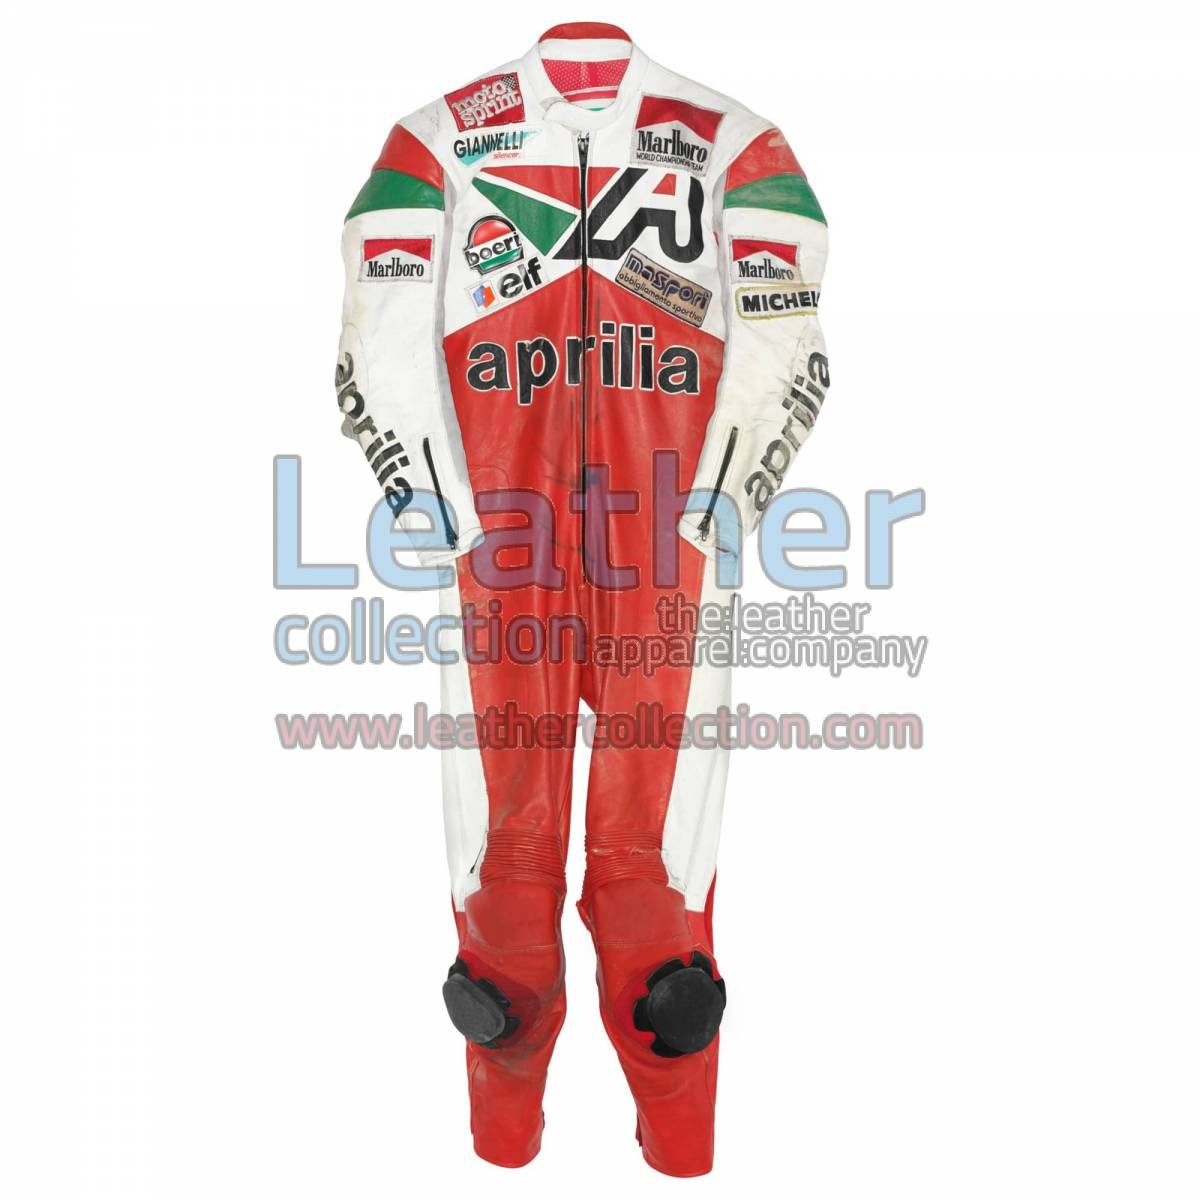 Loris Reggiani Aprilia GP 1987 Leather Suit